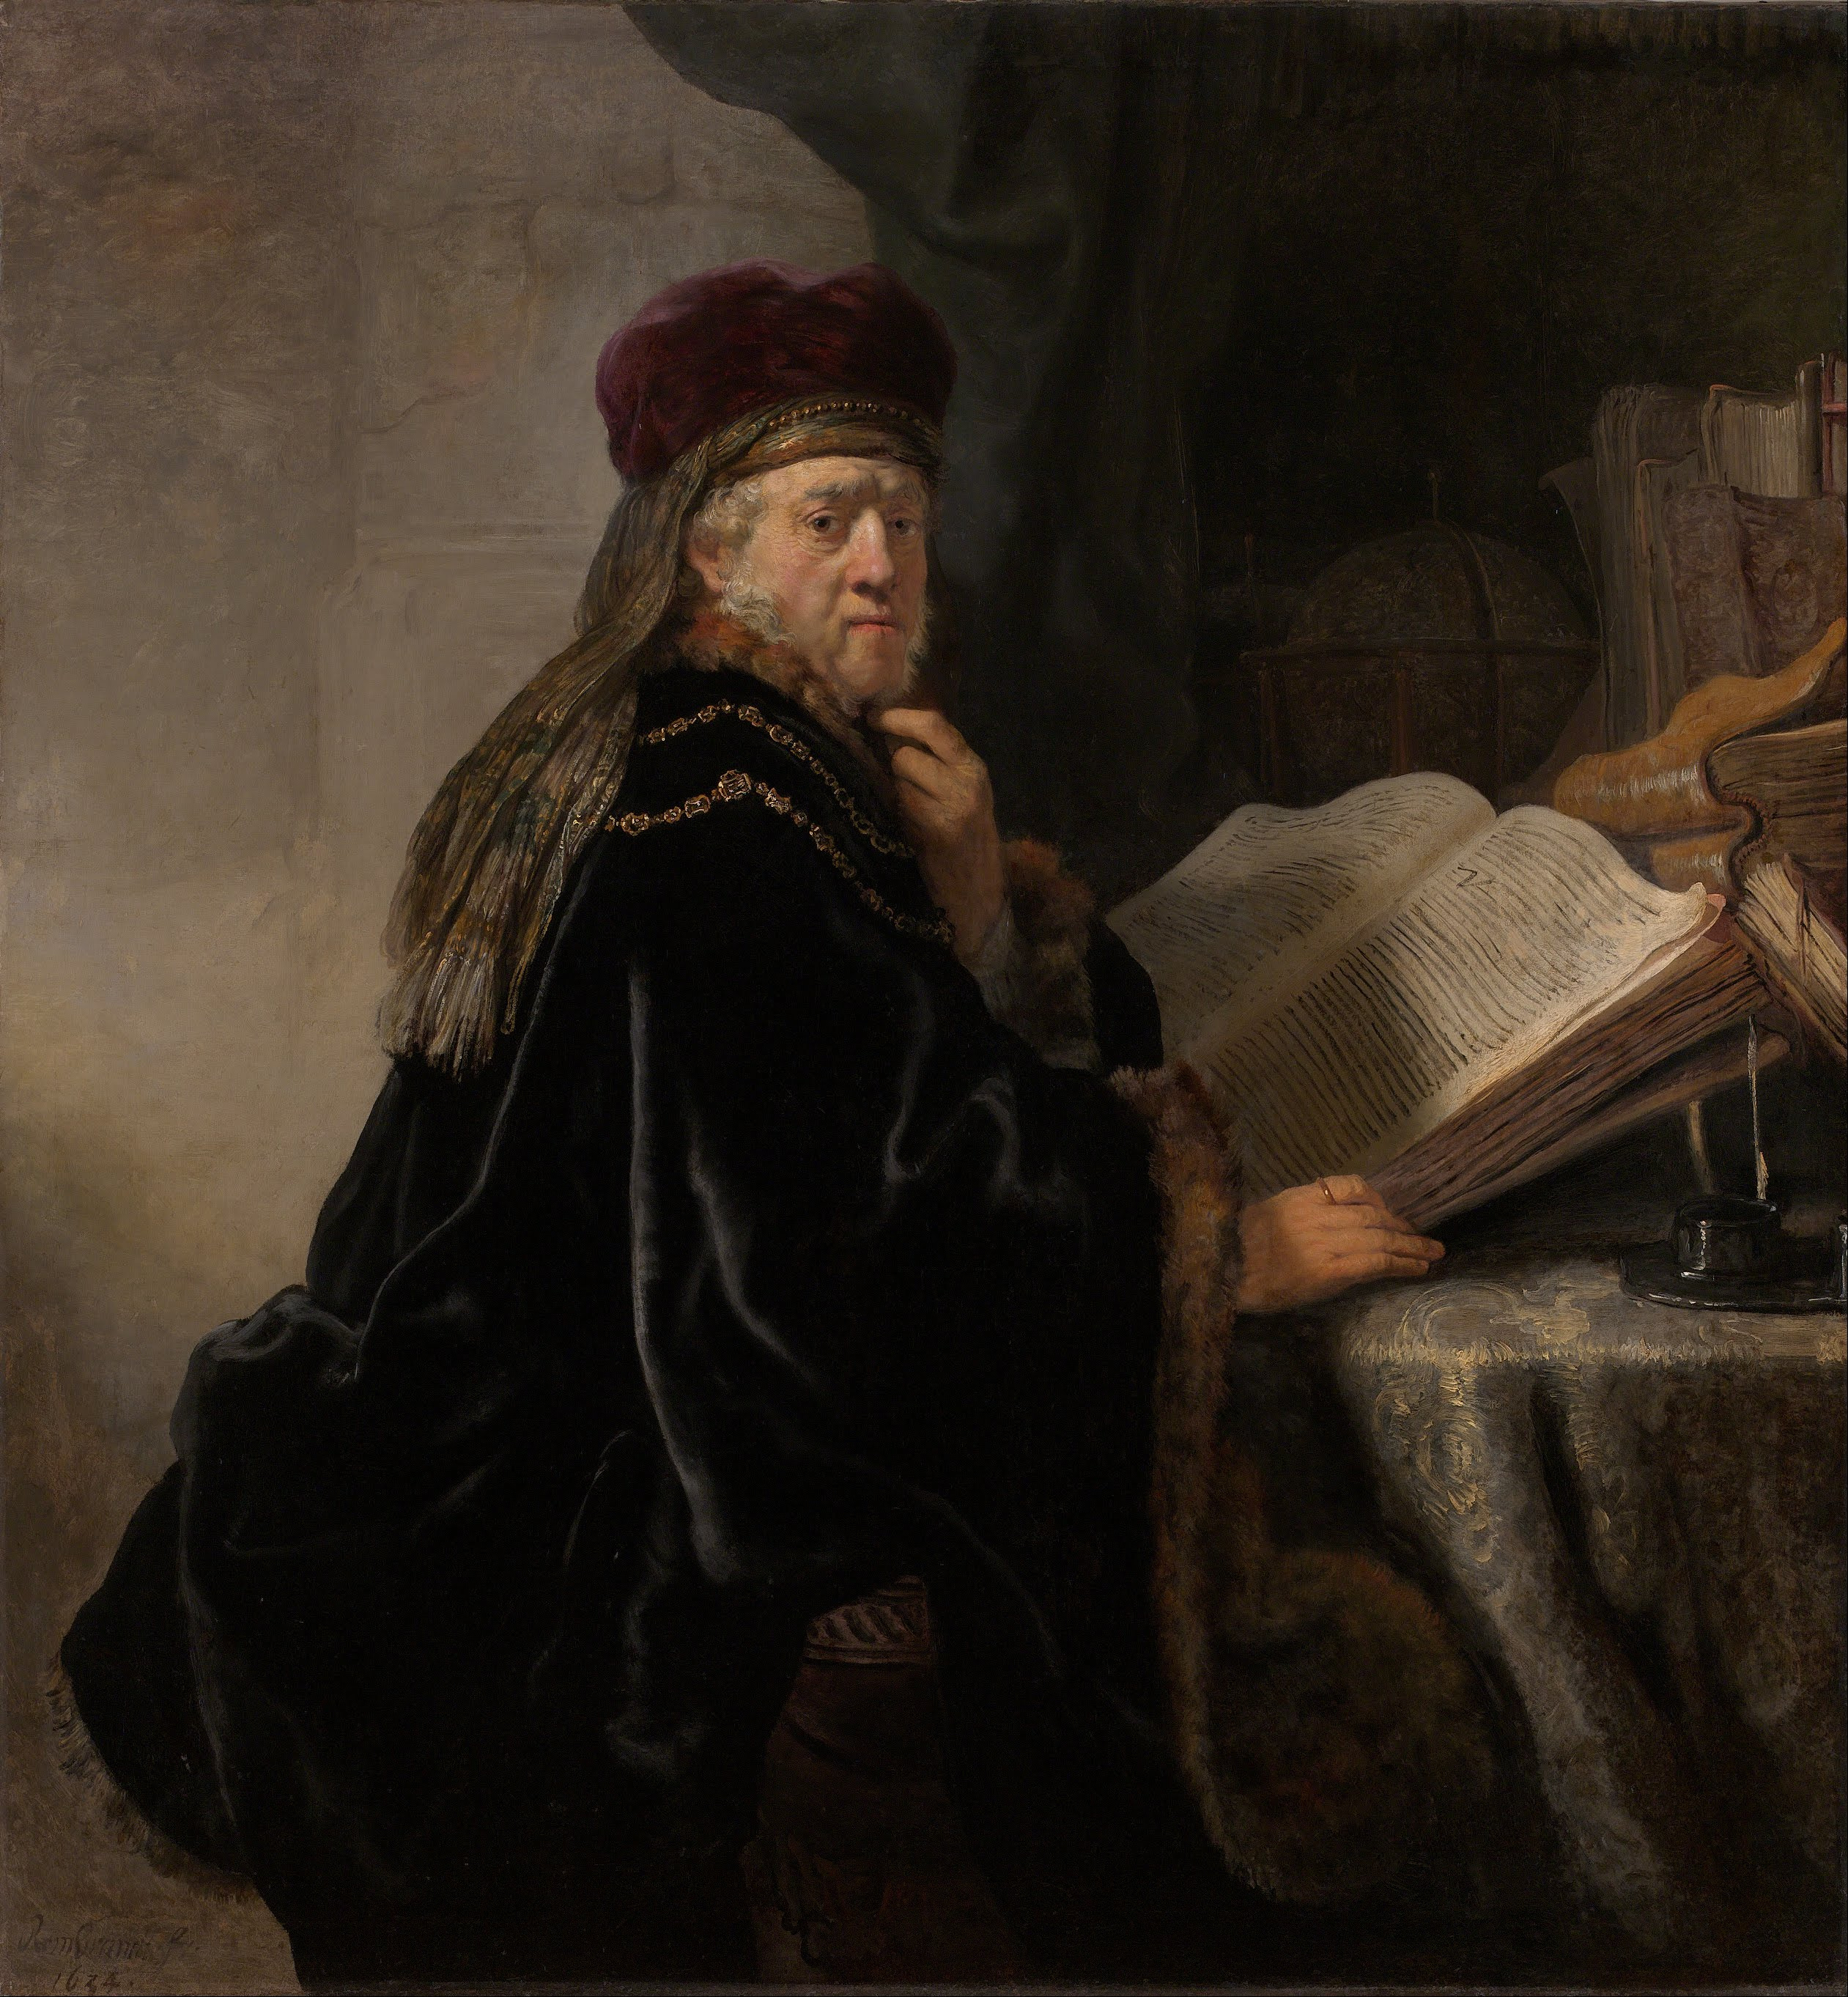 Filerembrandt harmensz van rijn scholar at his study google art filerembrandt harmensz van rijn scholar at his study google art project stopboris Choice Image